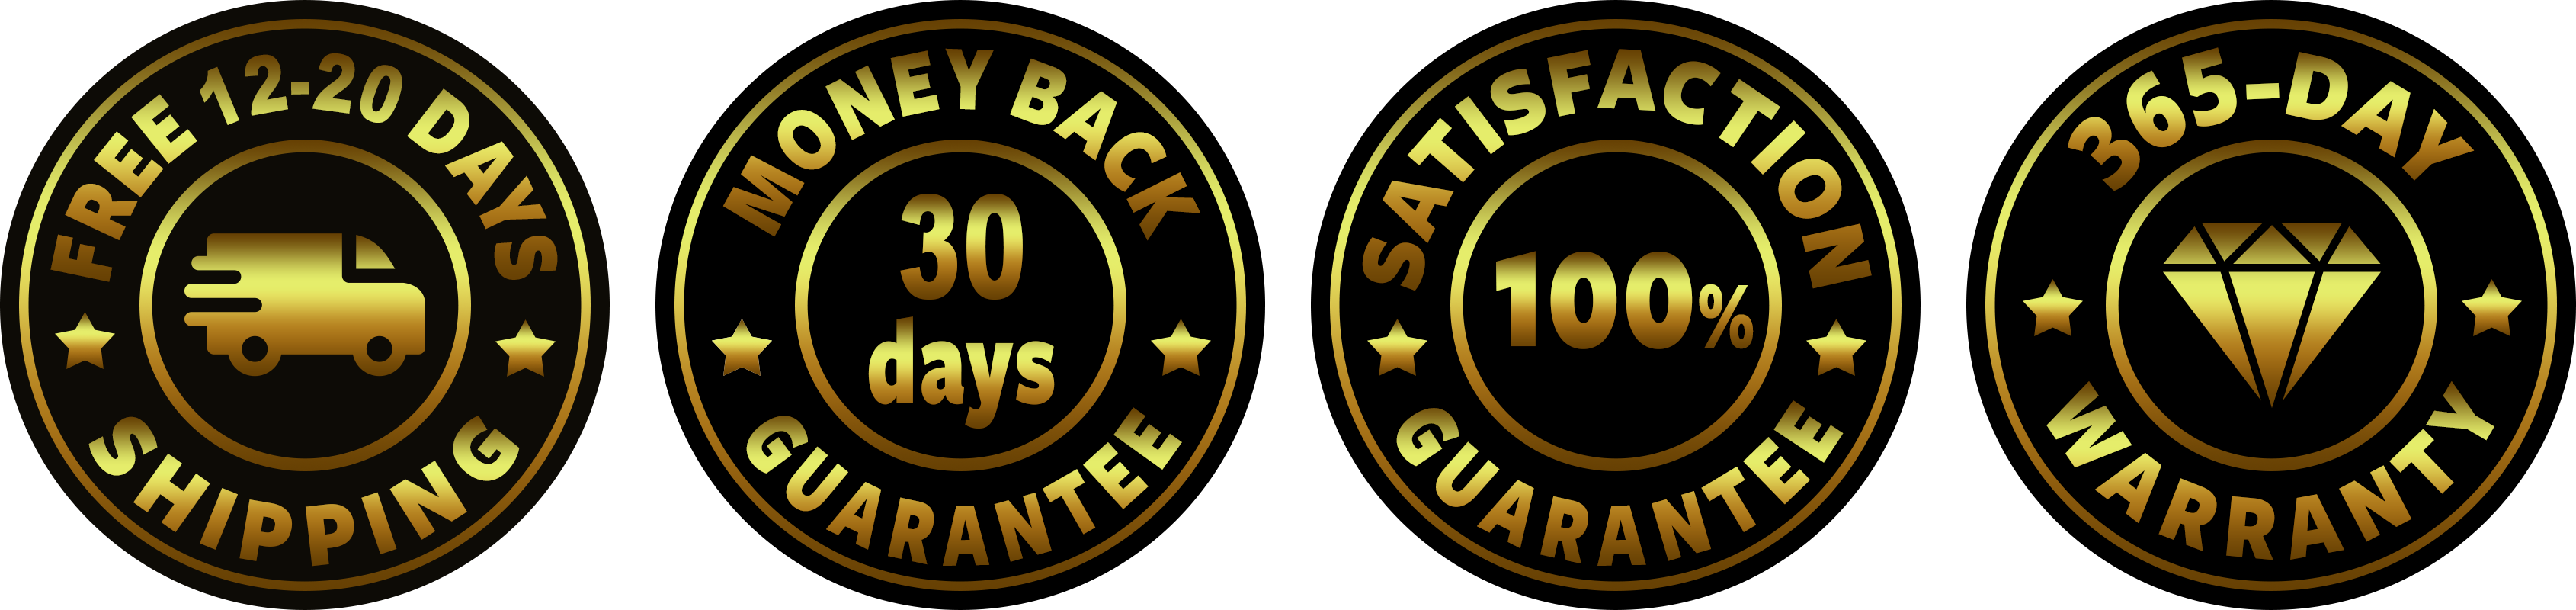 custom guarantee badge